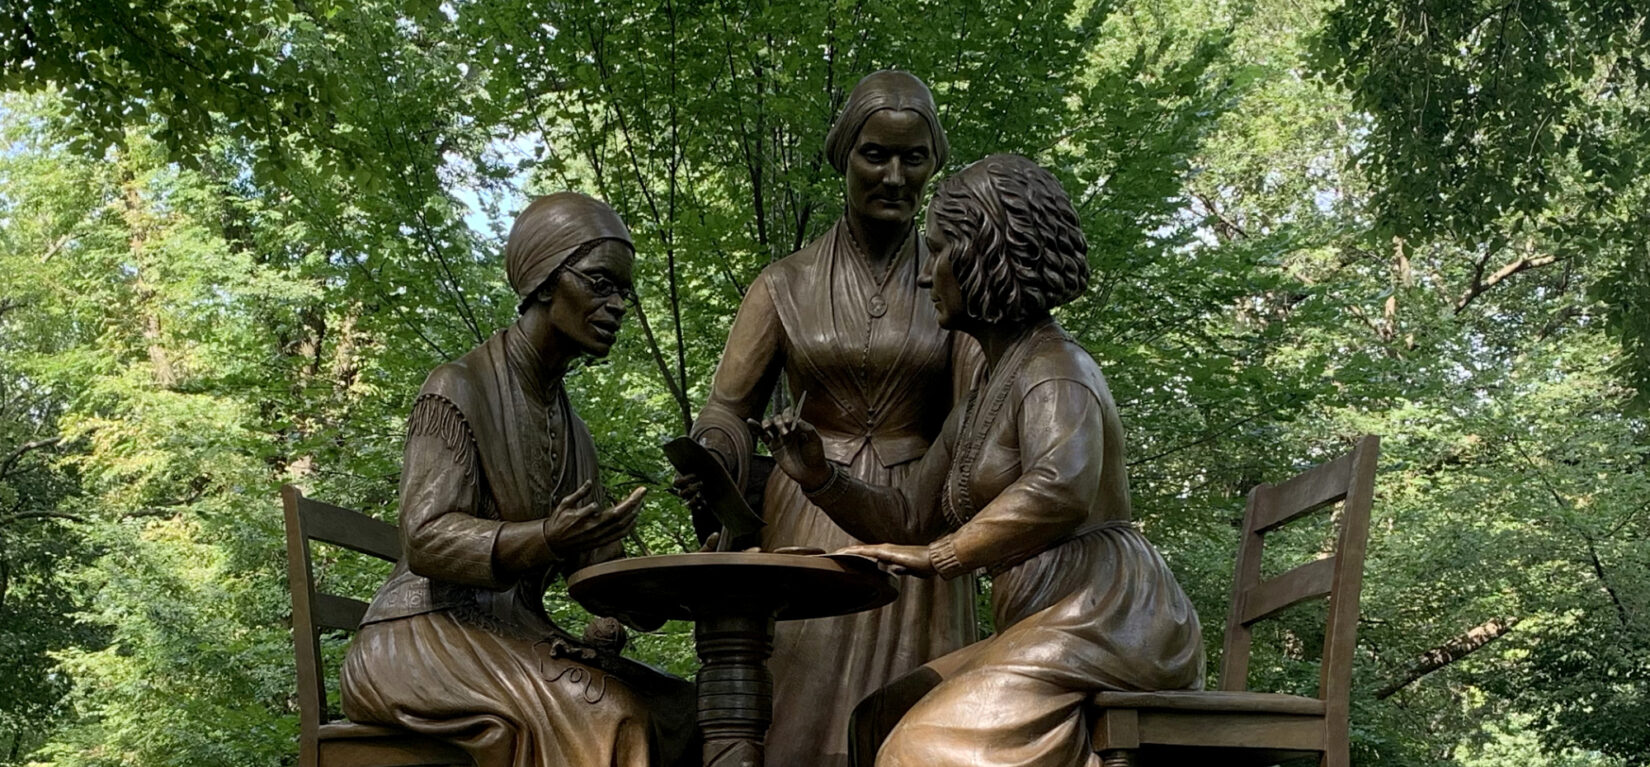 The statue is pictured under the shade of an American Elm with a few flowers left on its base